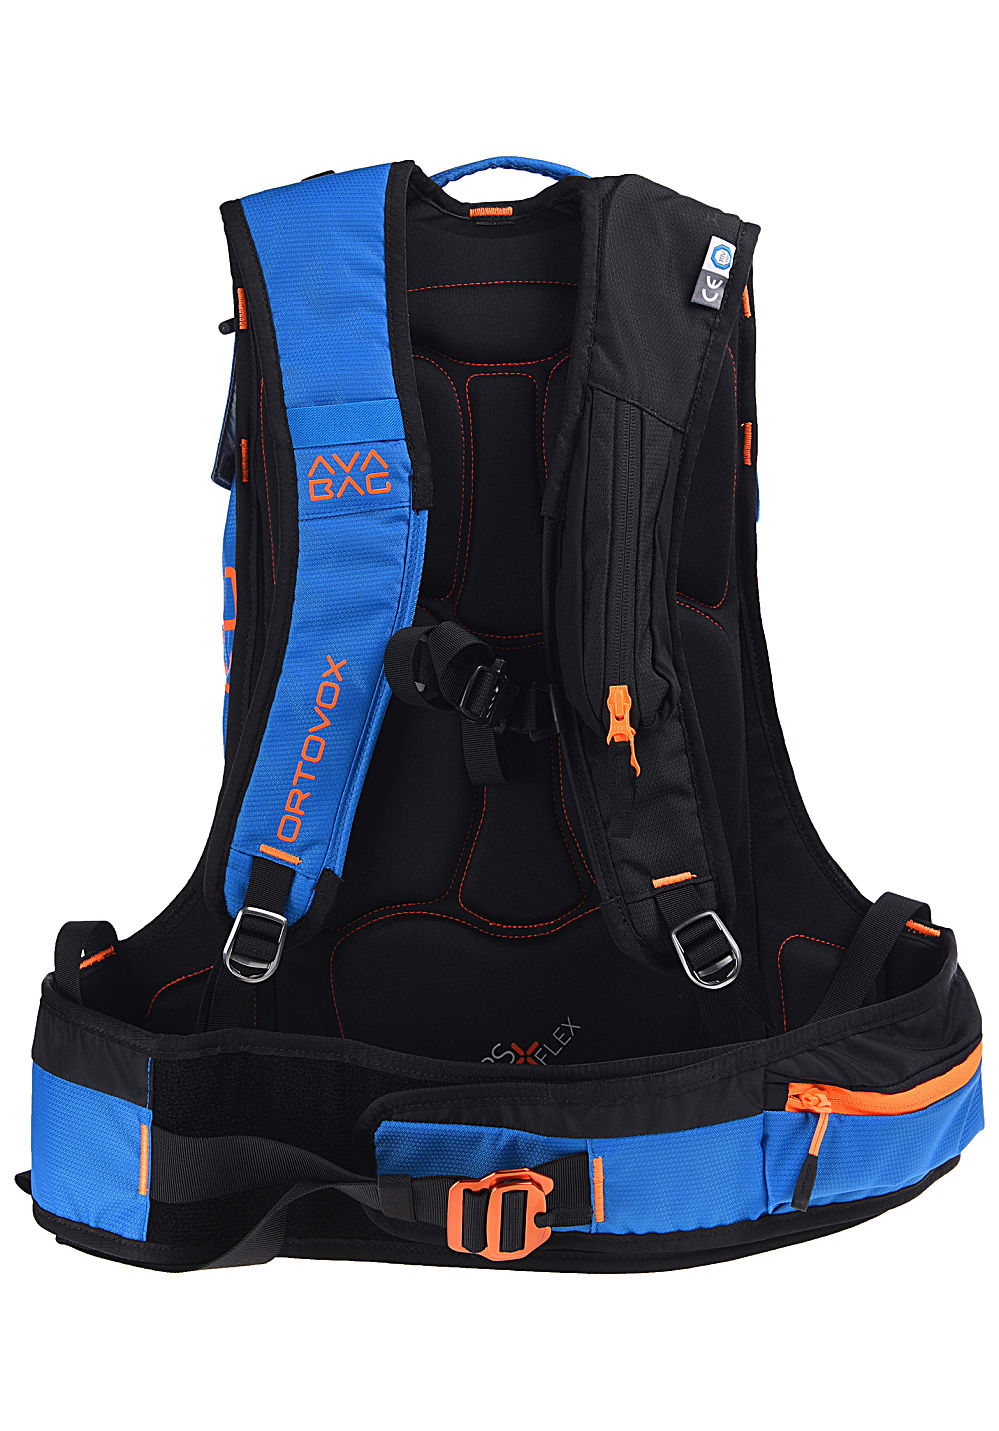 6592f8f379 ORTOVOX Free Rider 22L AVABAG Kit - Avalanche Backpack - Blue ...